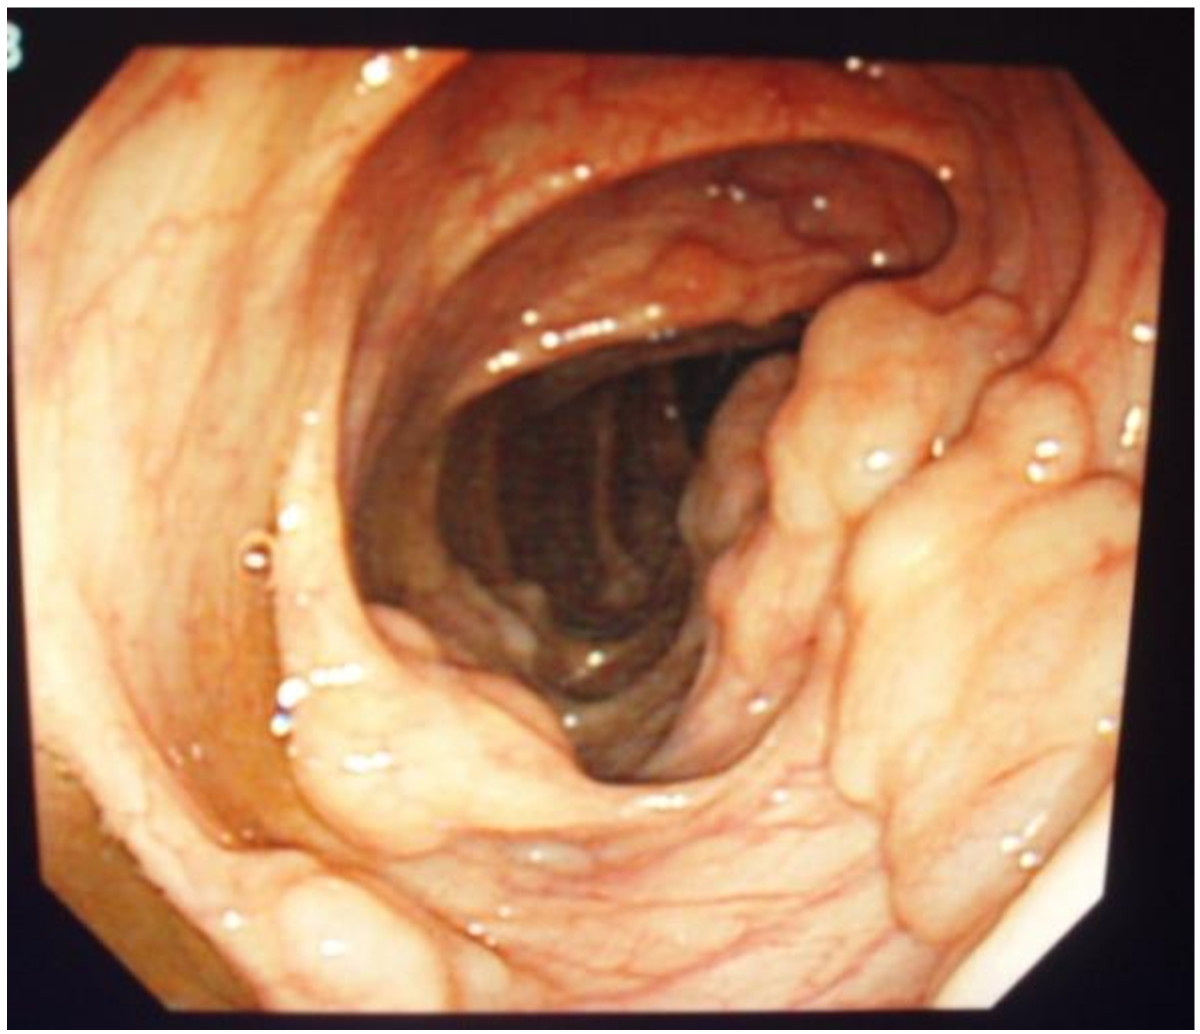 Improvement of pneumatosis cystoides intestinalis after